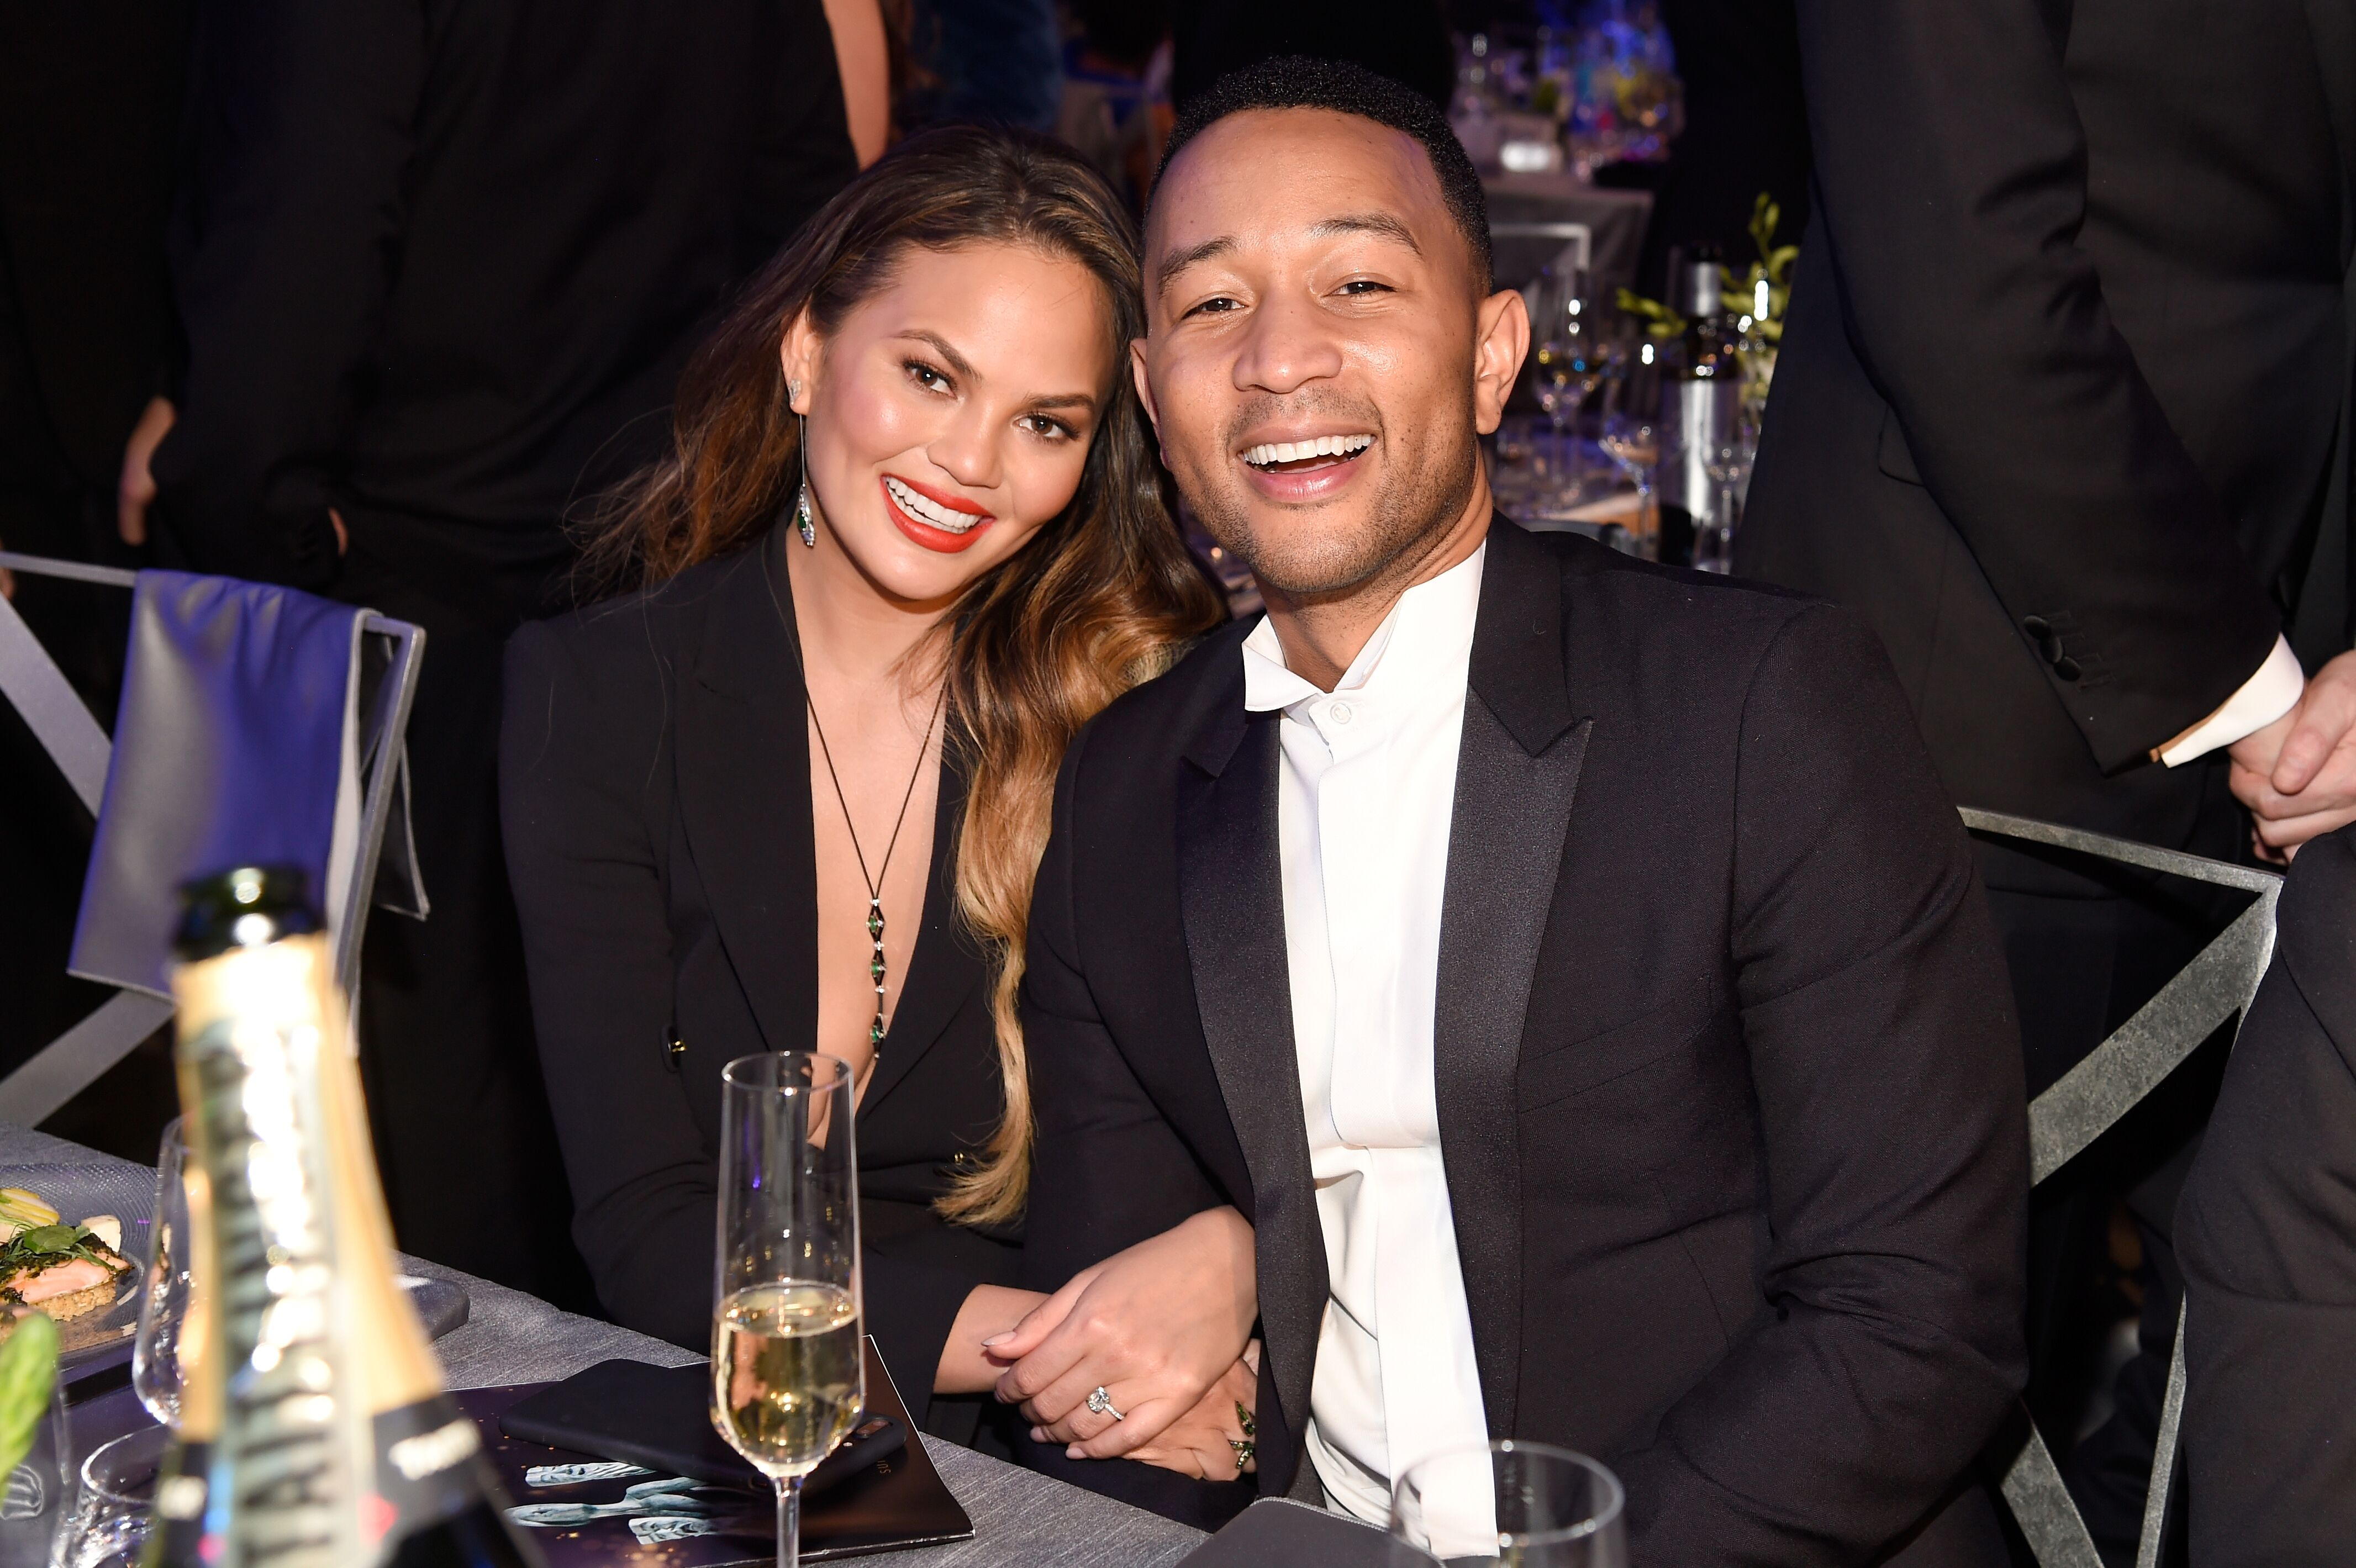 Chrissy Teigen and artist John Legend during The 23rd Annual Screen Actors Guild Awards. | Source: Getty Images